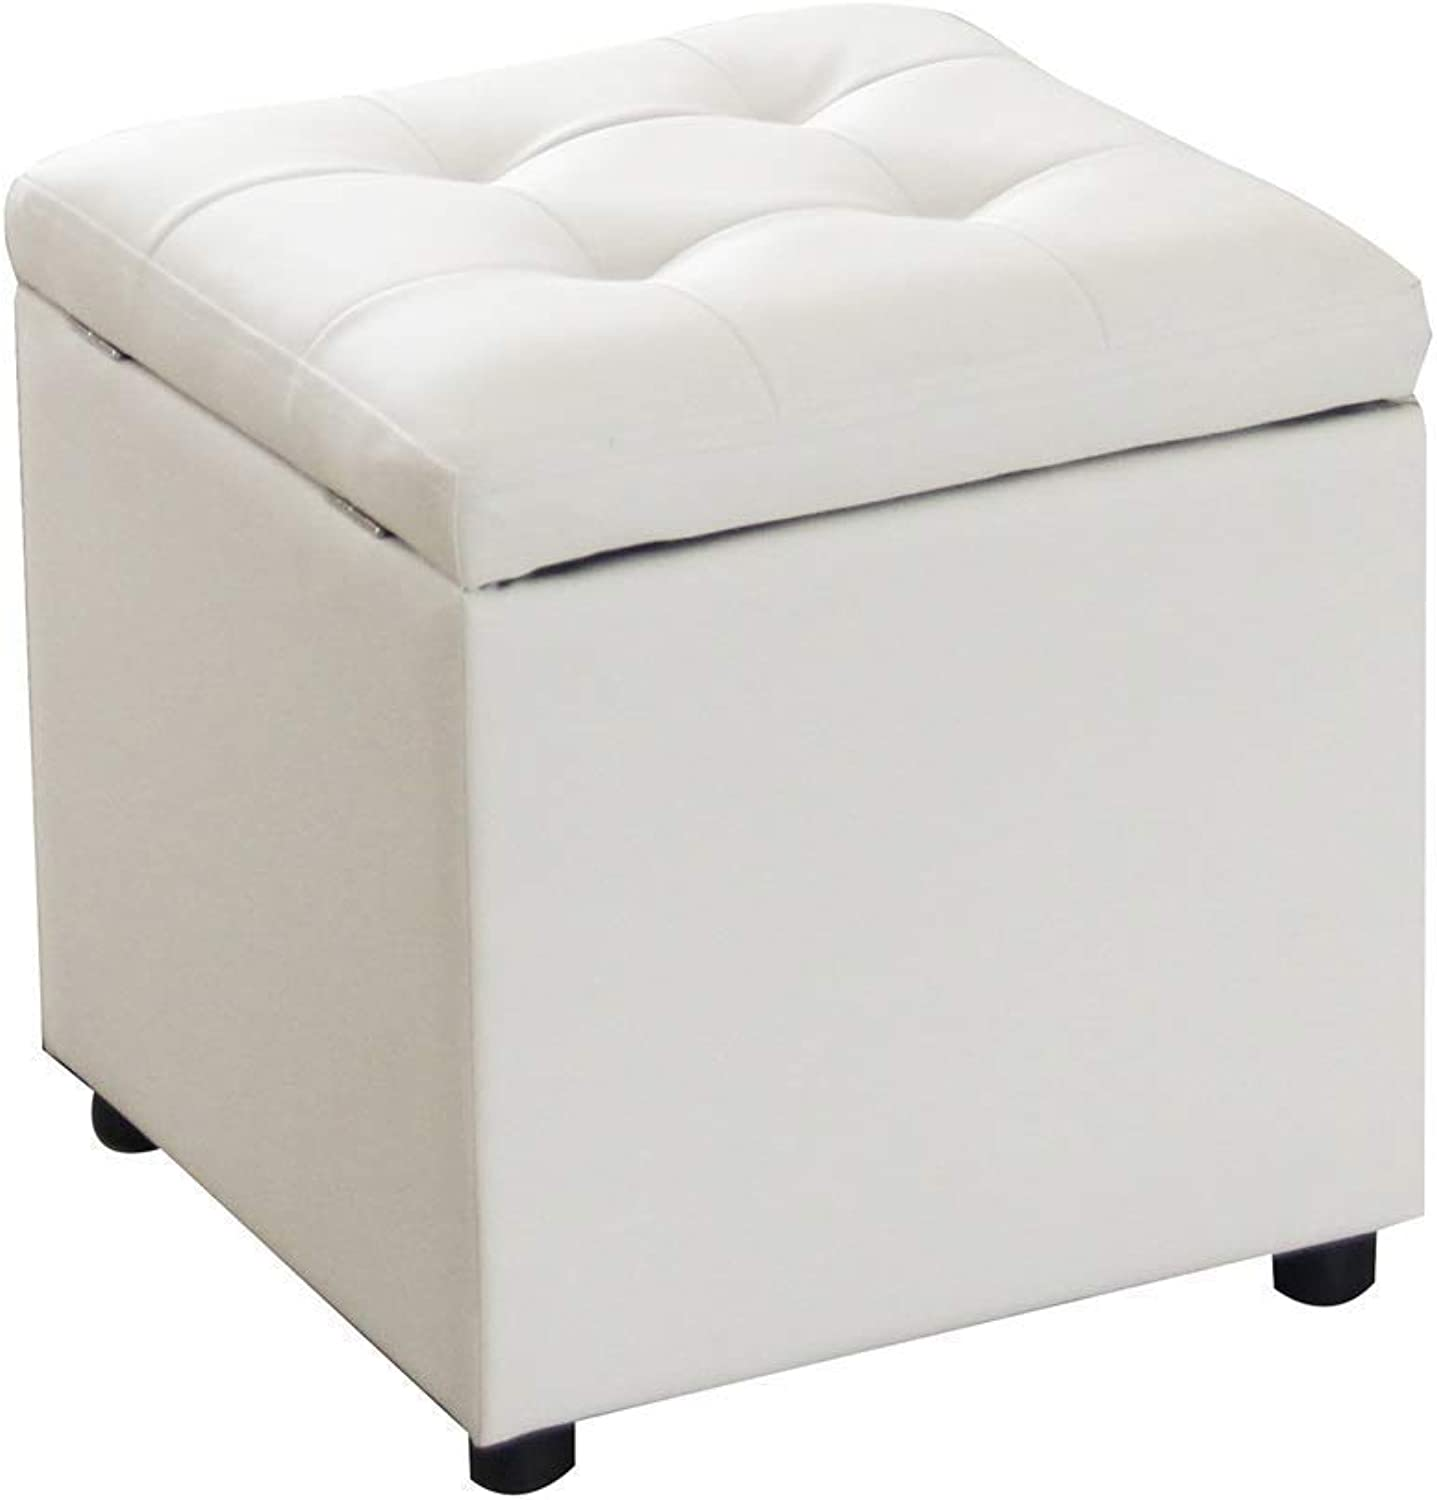 Fashion Storage Change shoes Stool PU Foot Stool Storage Low Footstool Portable Picnic Seat Versatile Space-Saving Cubes HENGXIAO (color   White)